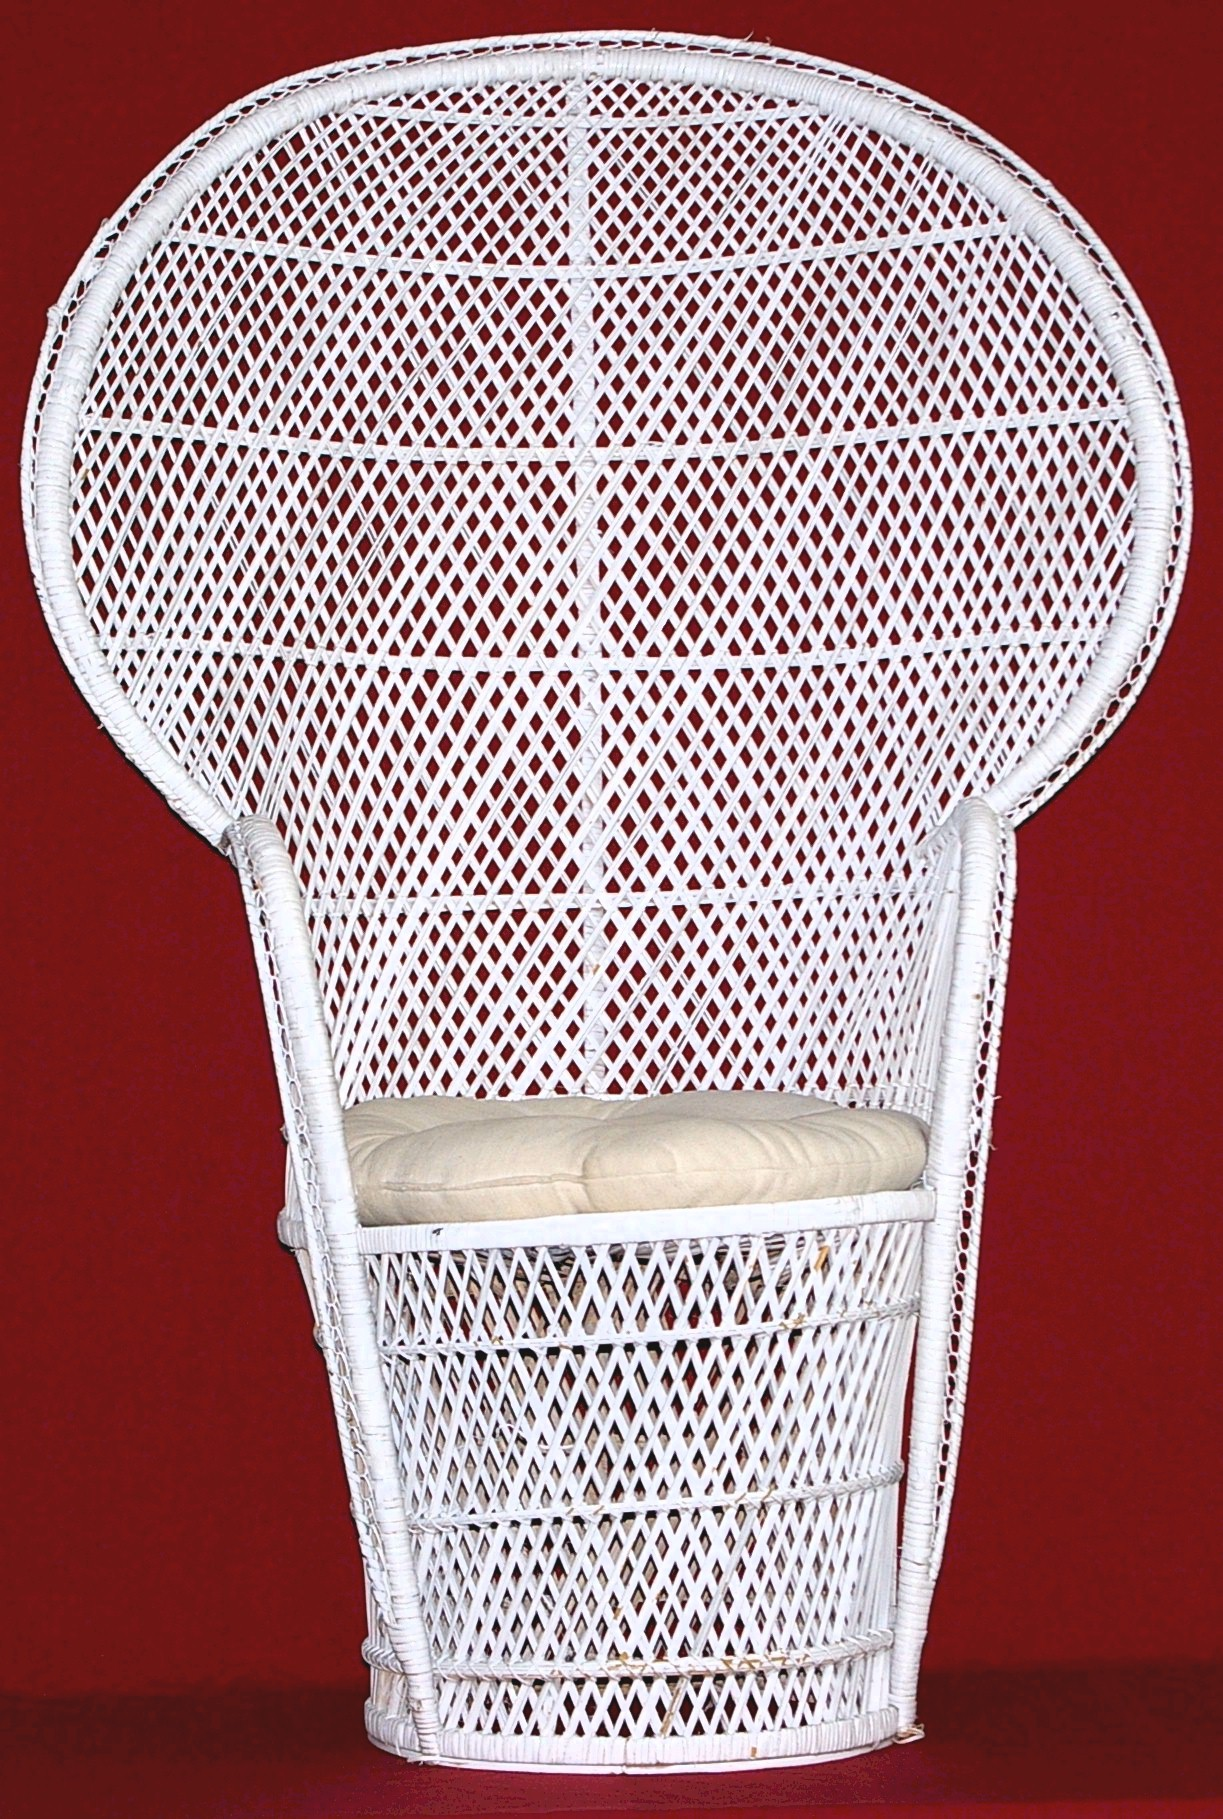 our white wicker shower chair seats the guest of honor in style